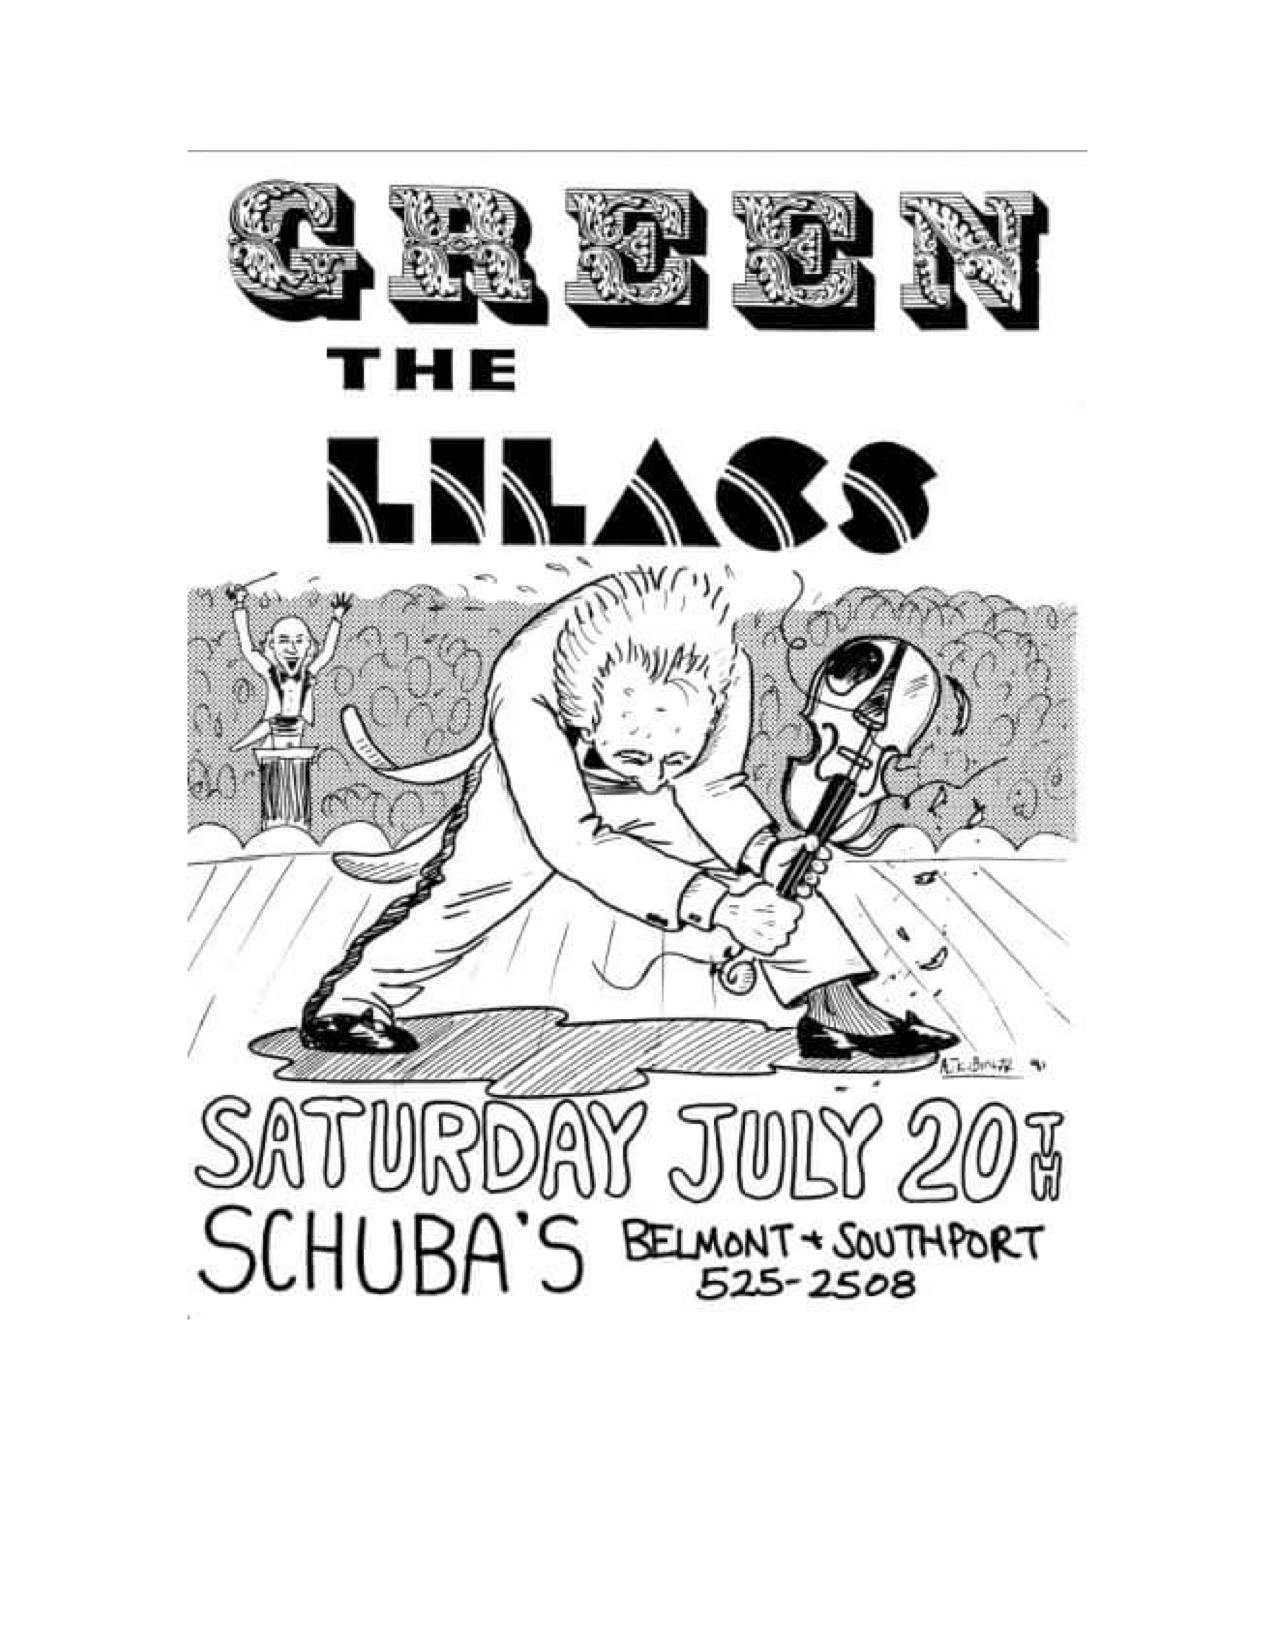 The Lilacs Poster 5 (Green at Schuba's July).jpg